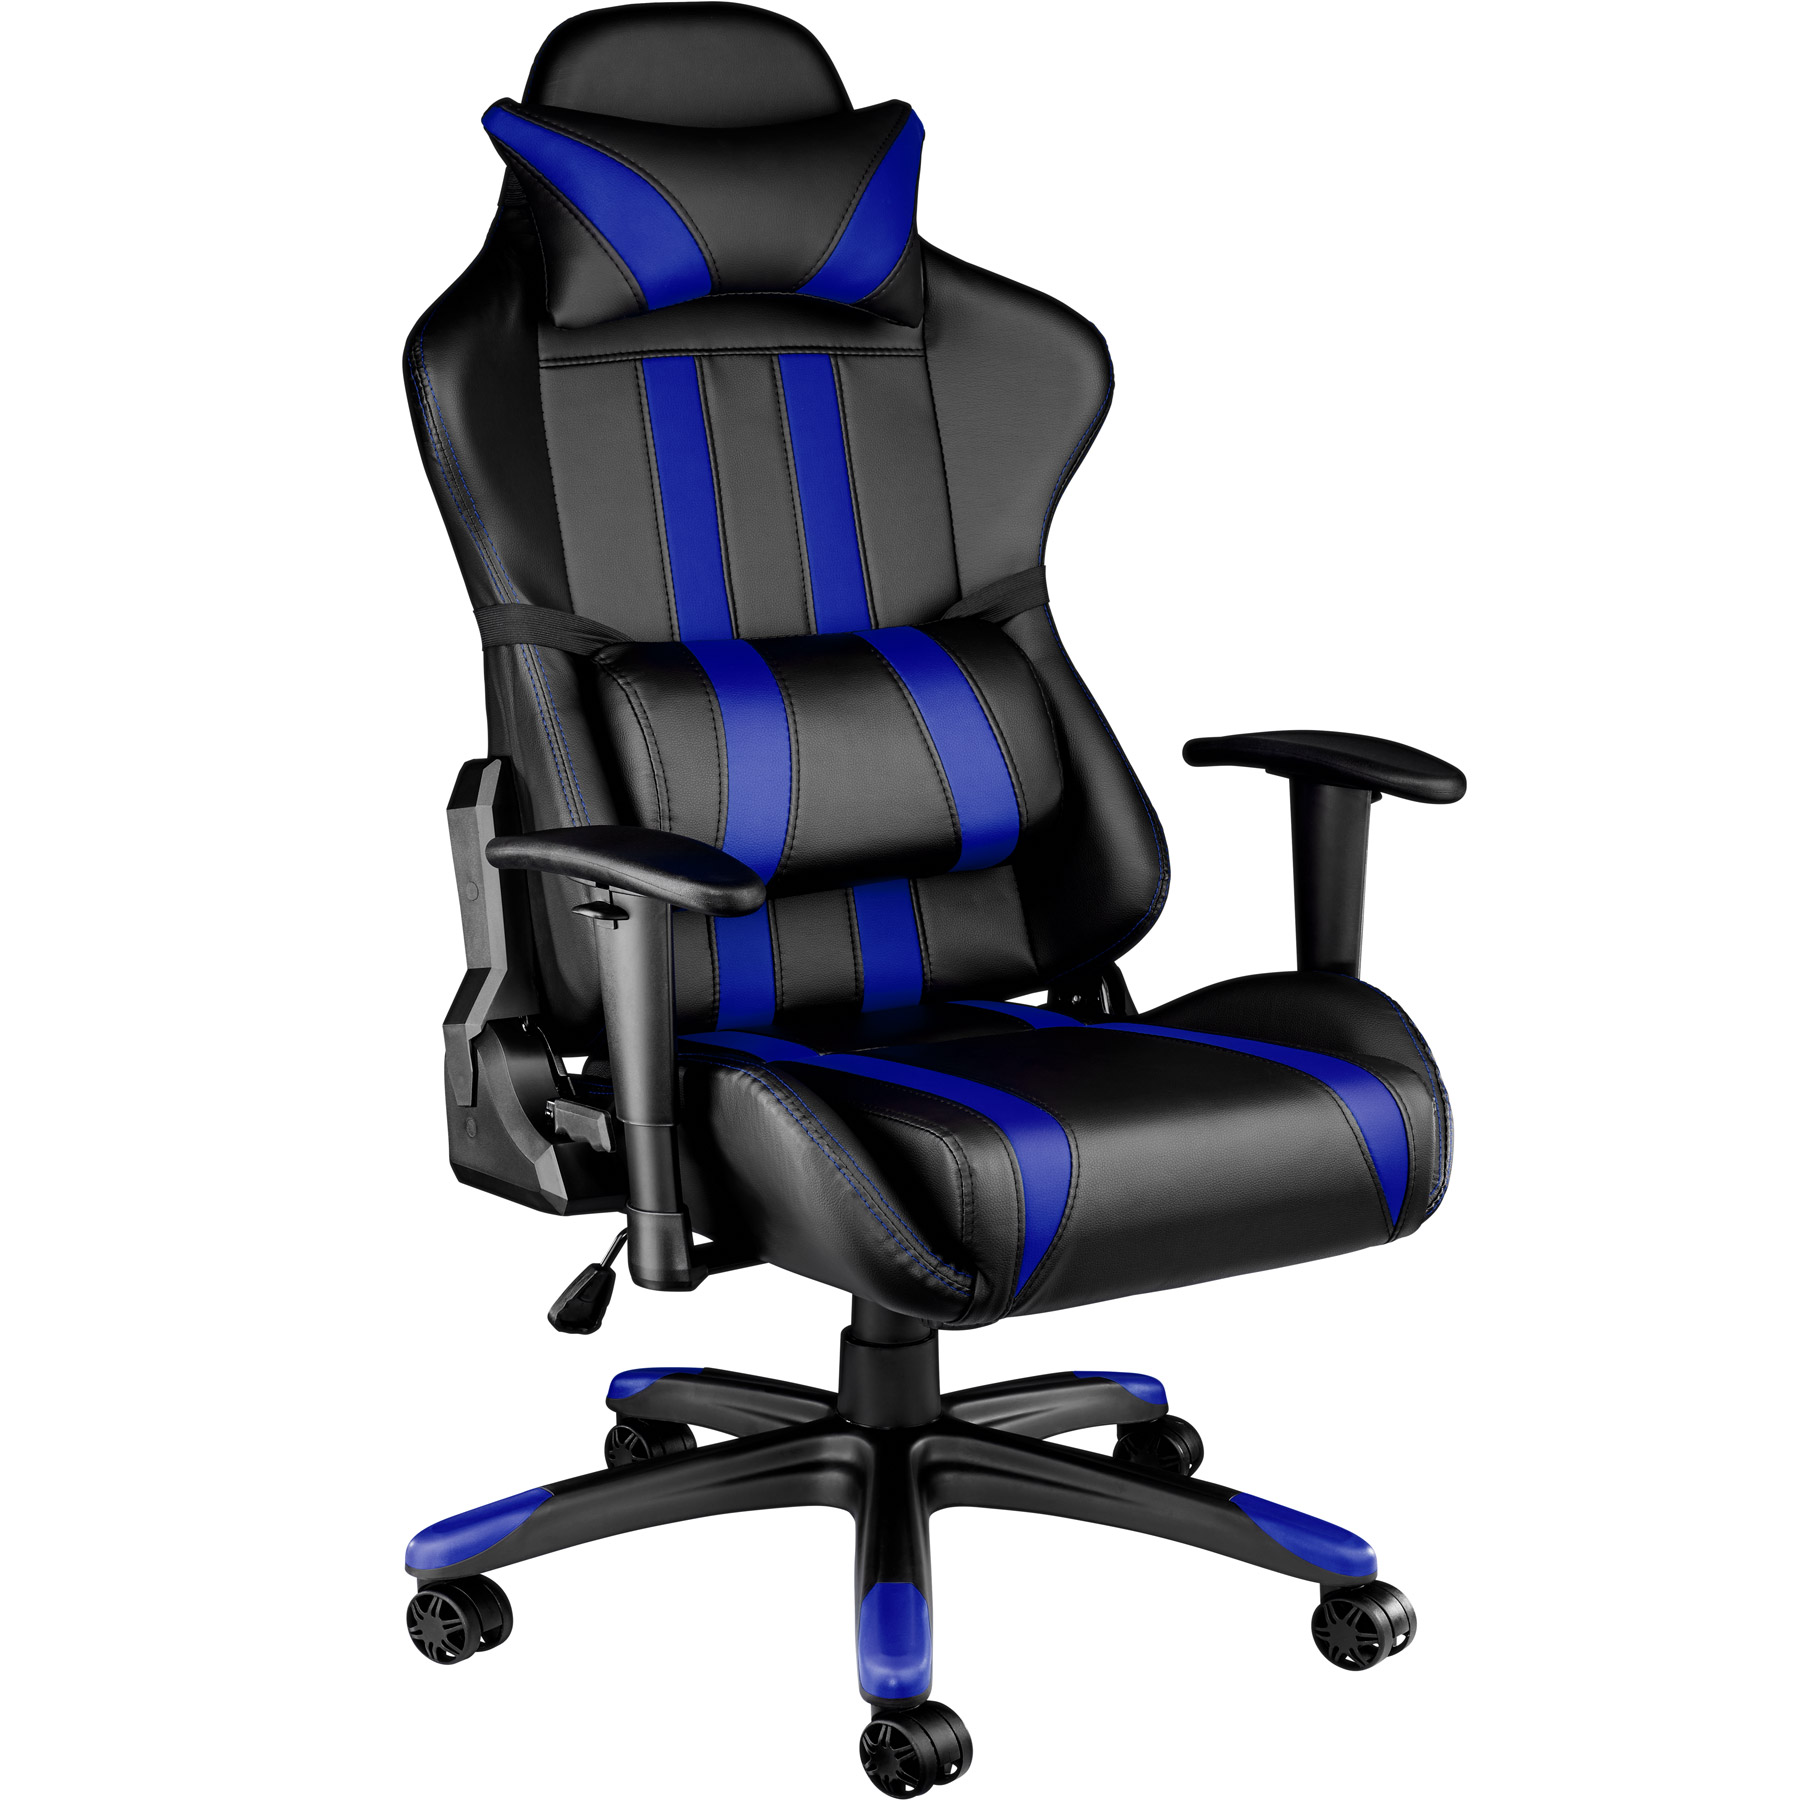 office chair executive racing gaming car seat back support faux leather ebay. Black Bedroom Furniture Sets. Home Design Ideas